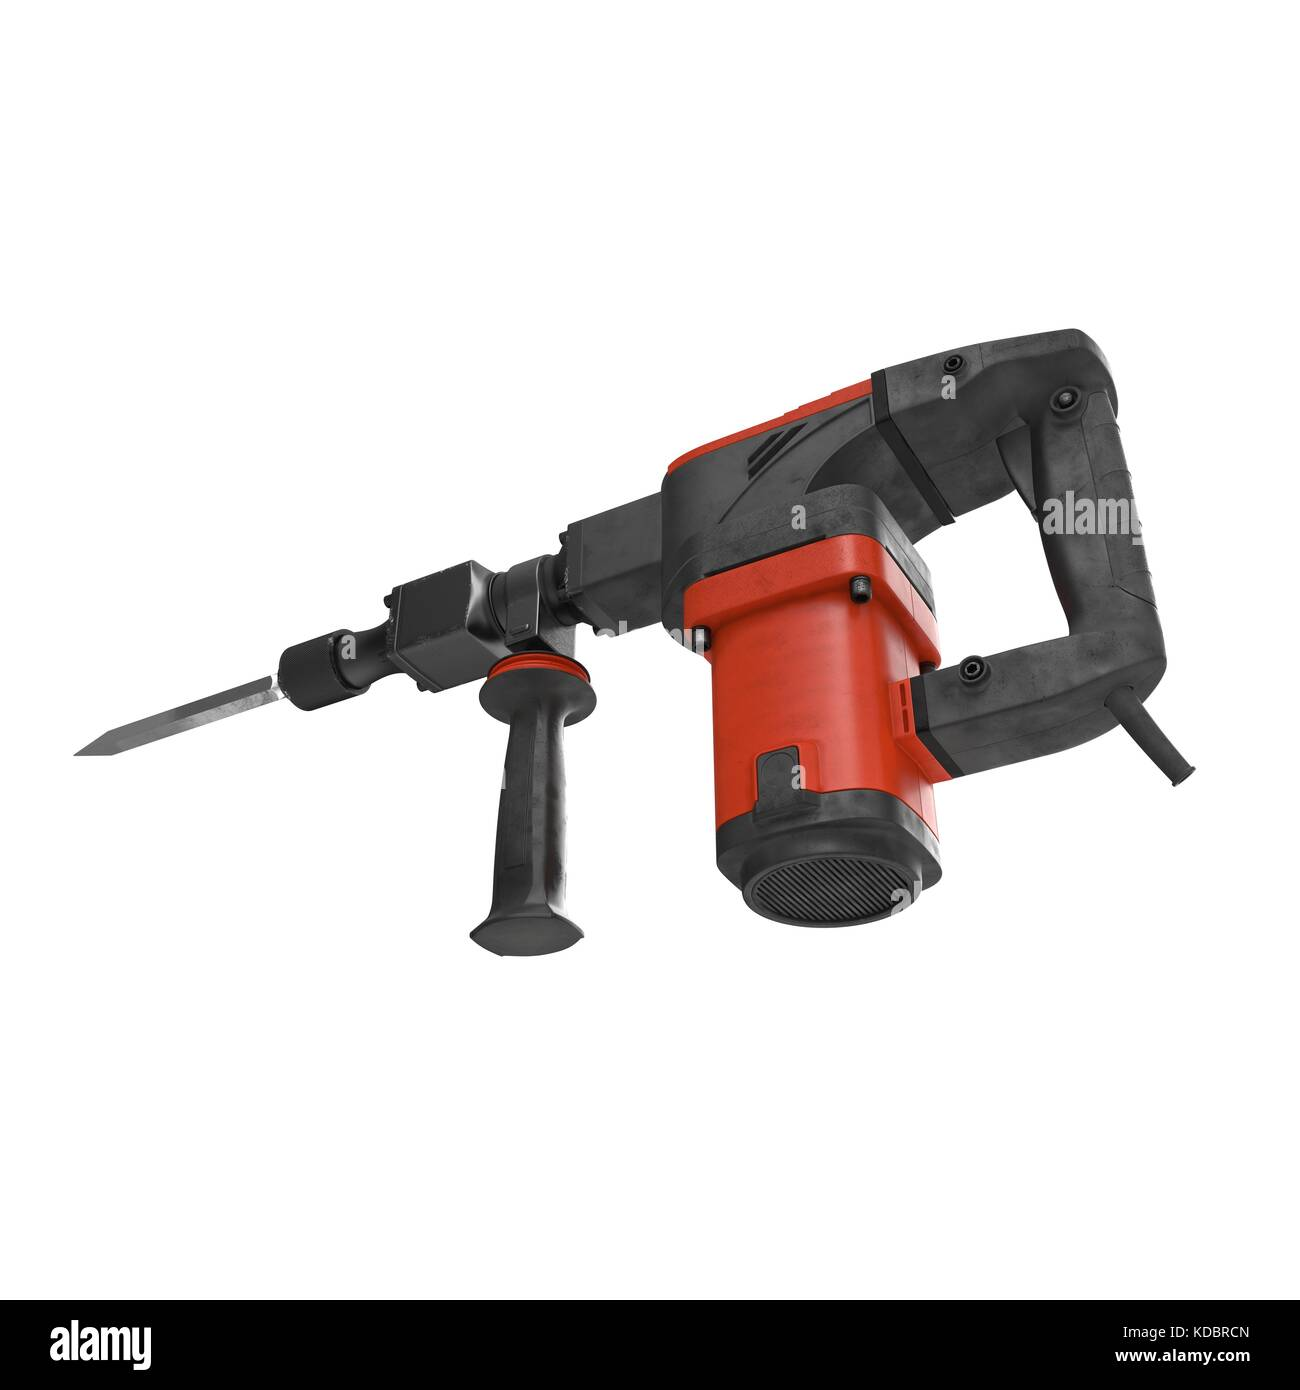 Jack hammer stock photos jack hammer stock images alamy for Hammer jack fish